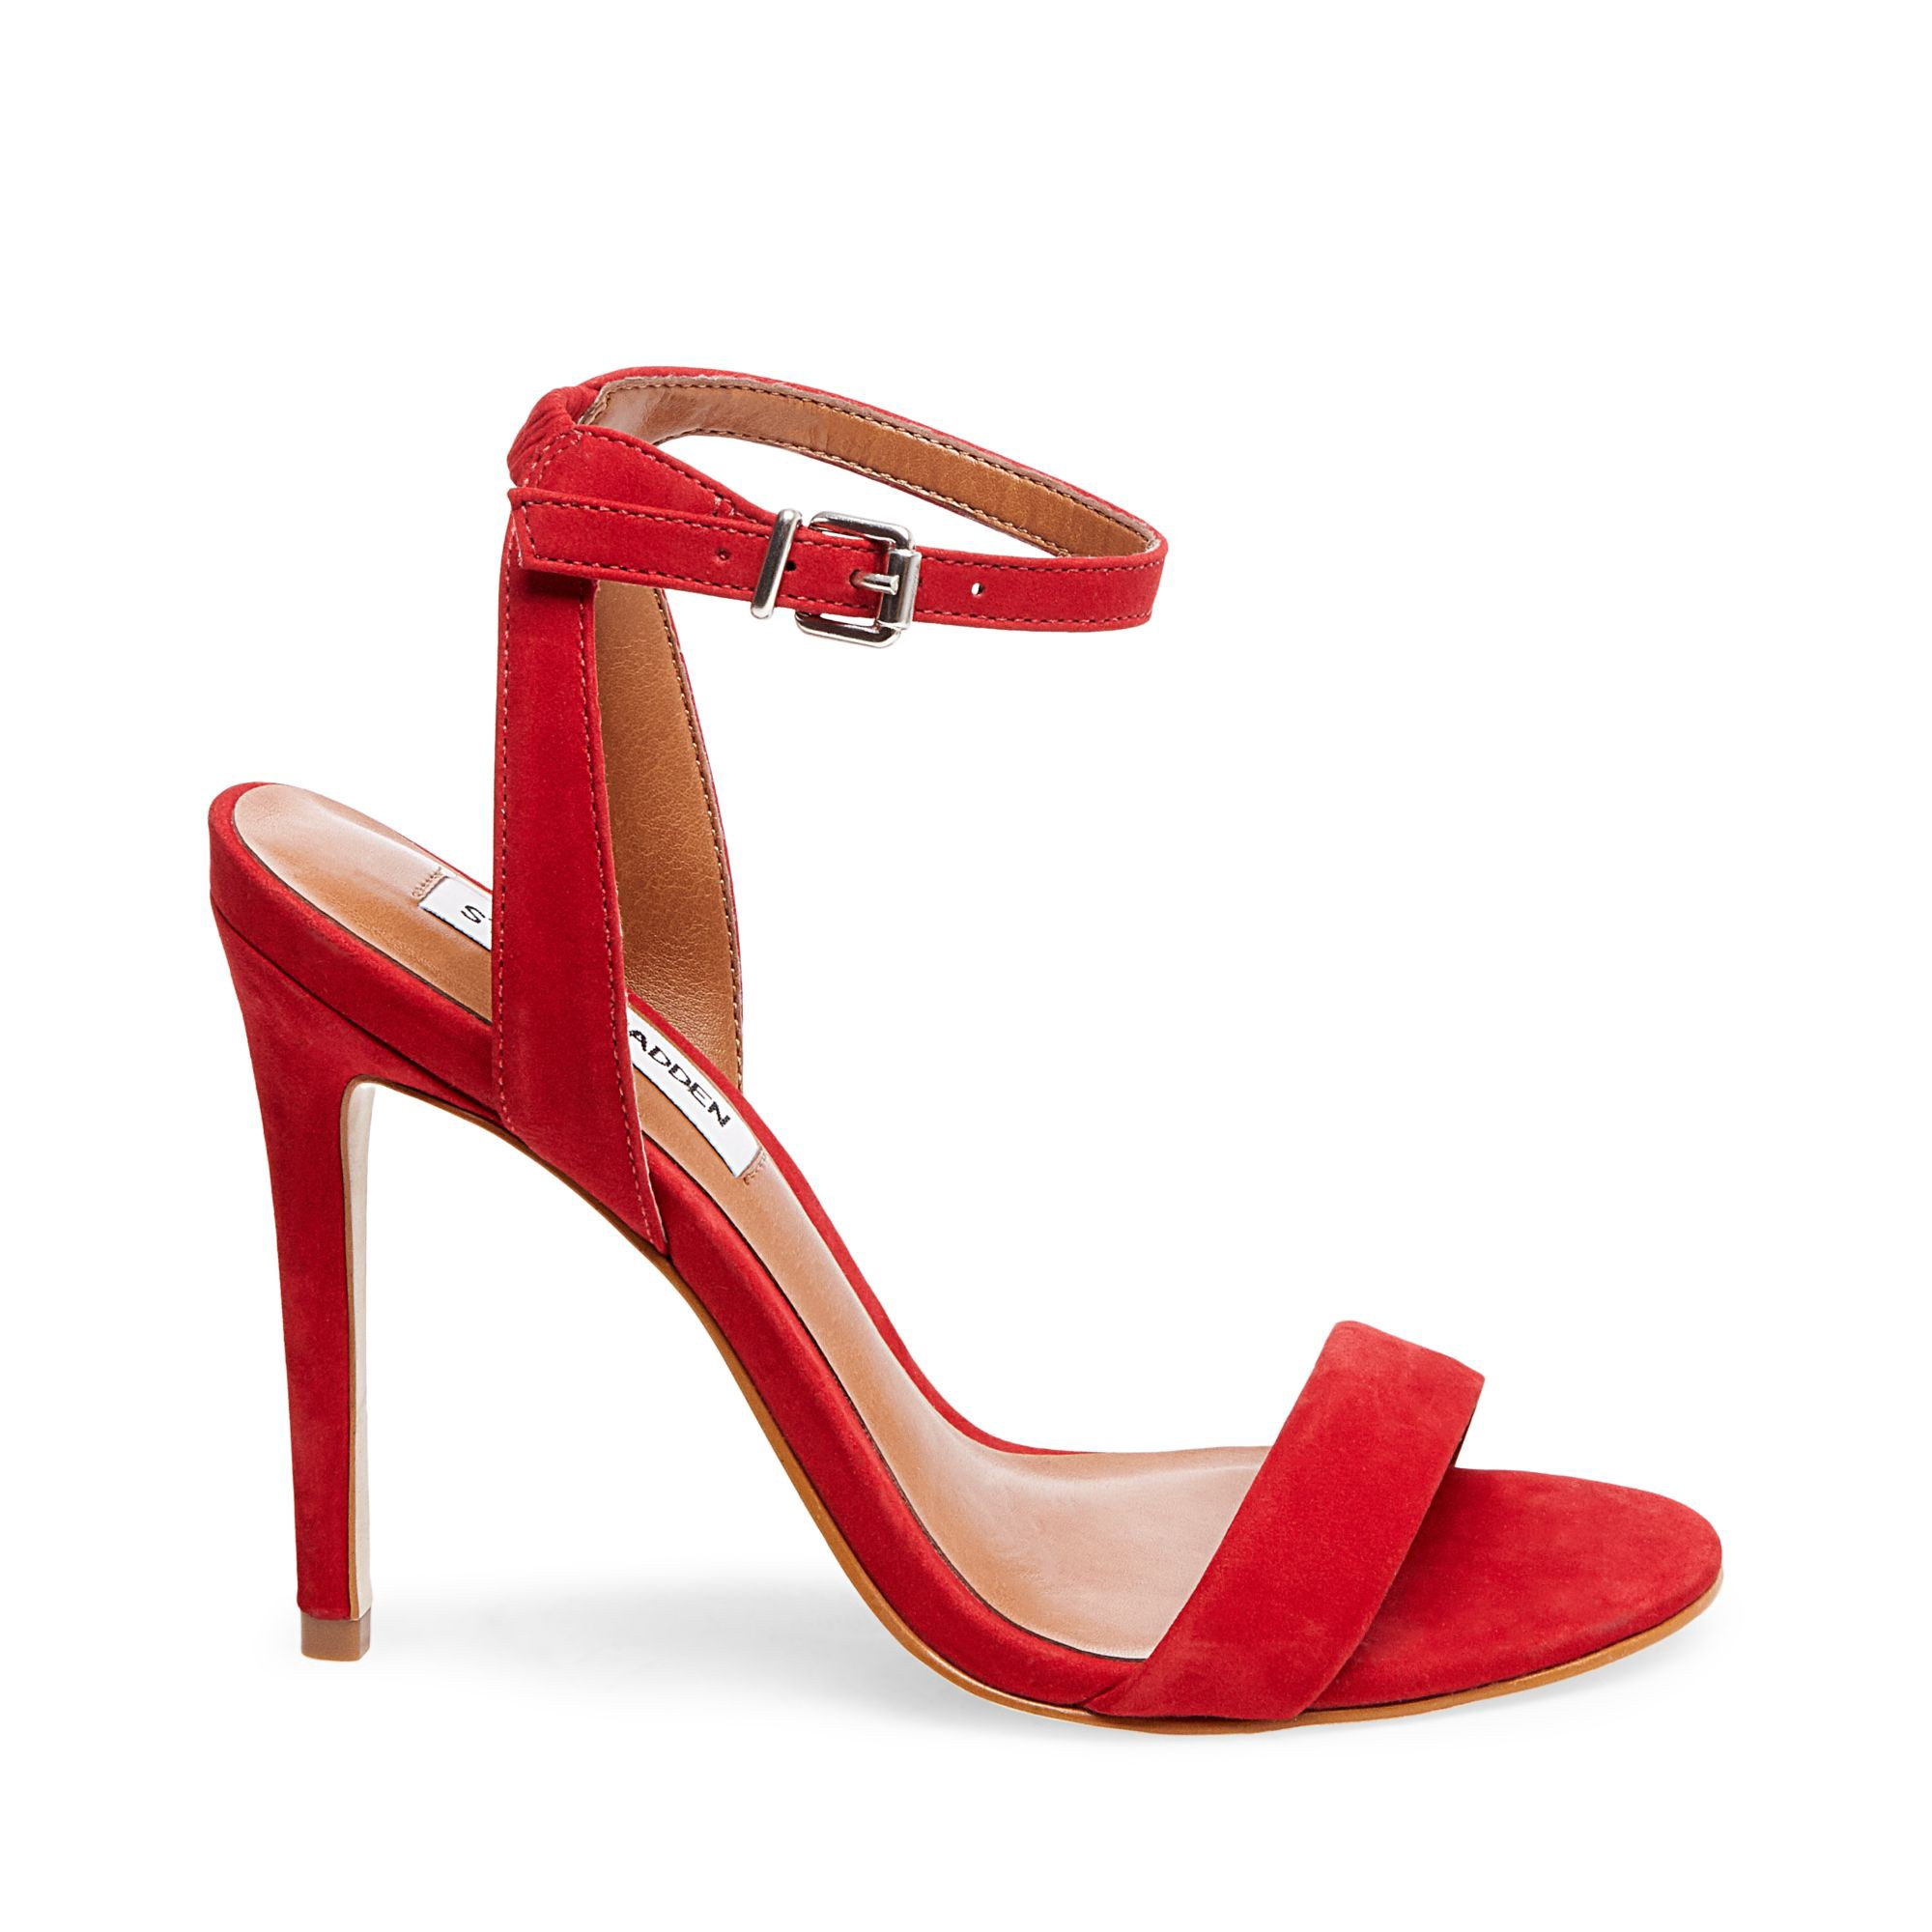 a7d08ebc866 A slim ankle strap lends a dash of on-trend elegance to a barely there  sandal lofted by a stiletto heel. Style Name  Steve Madden Landen Ankle  Strap Sandal ...